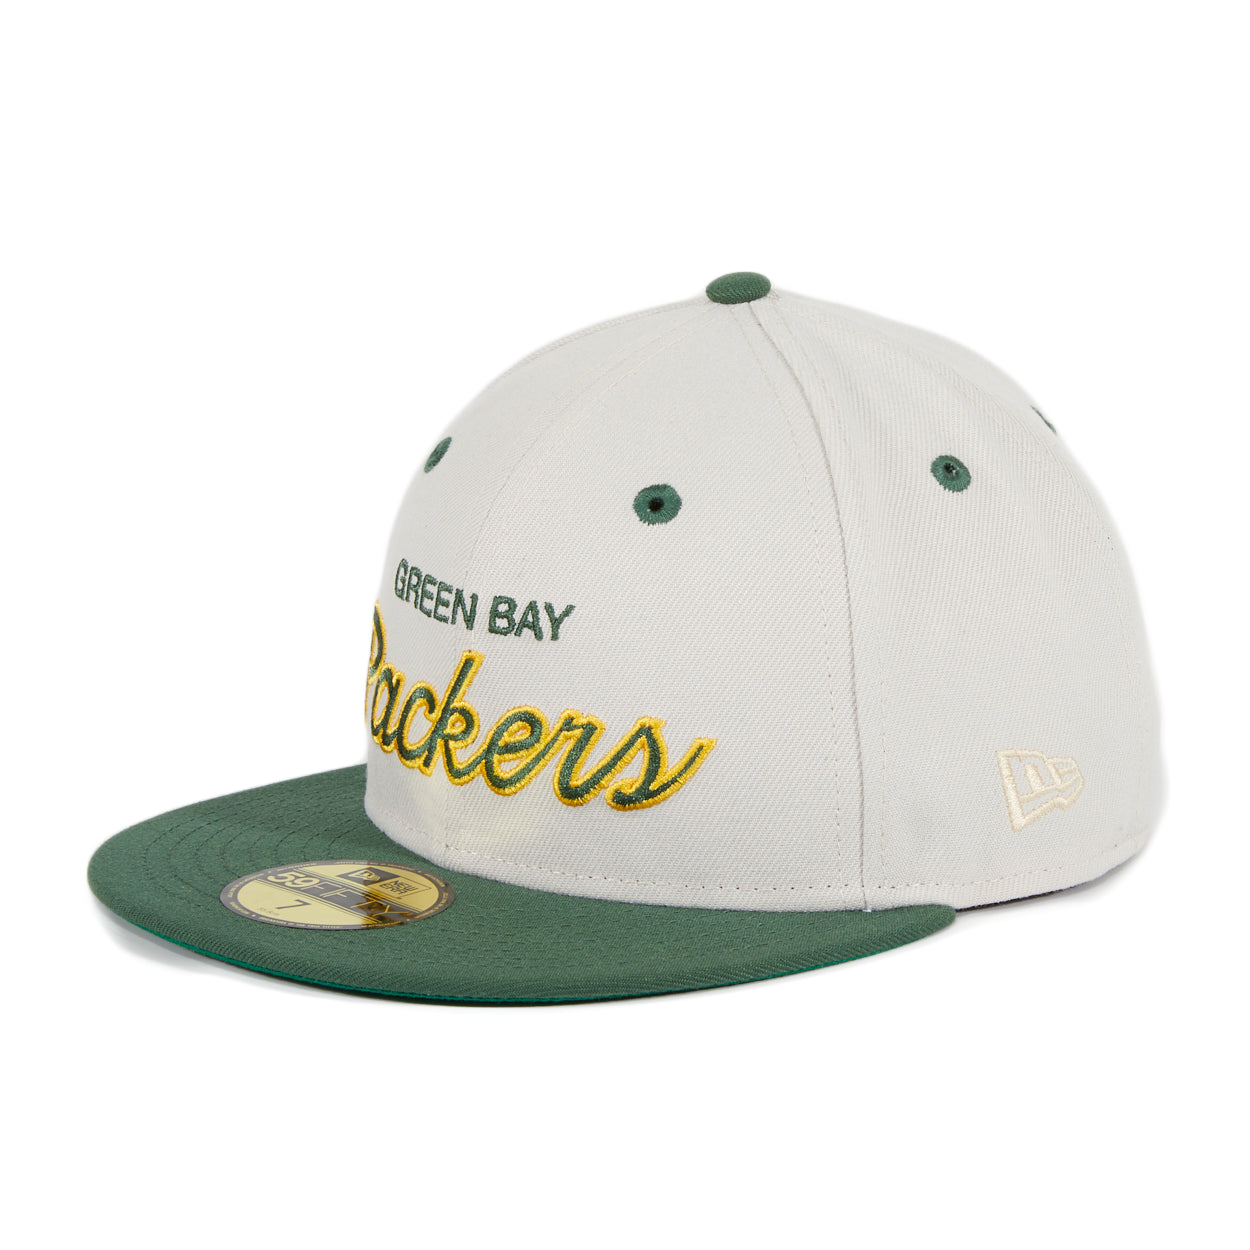 Exclusive New Era 59Fifty Green Bay Packers Script Hat - 2T Stone, Green